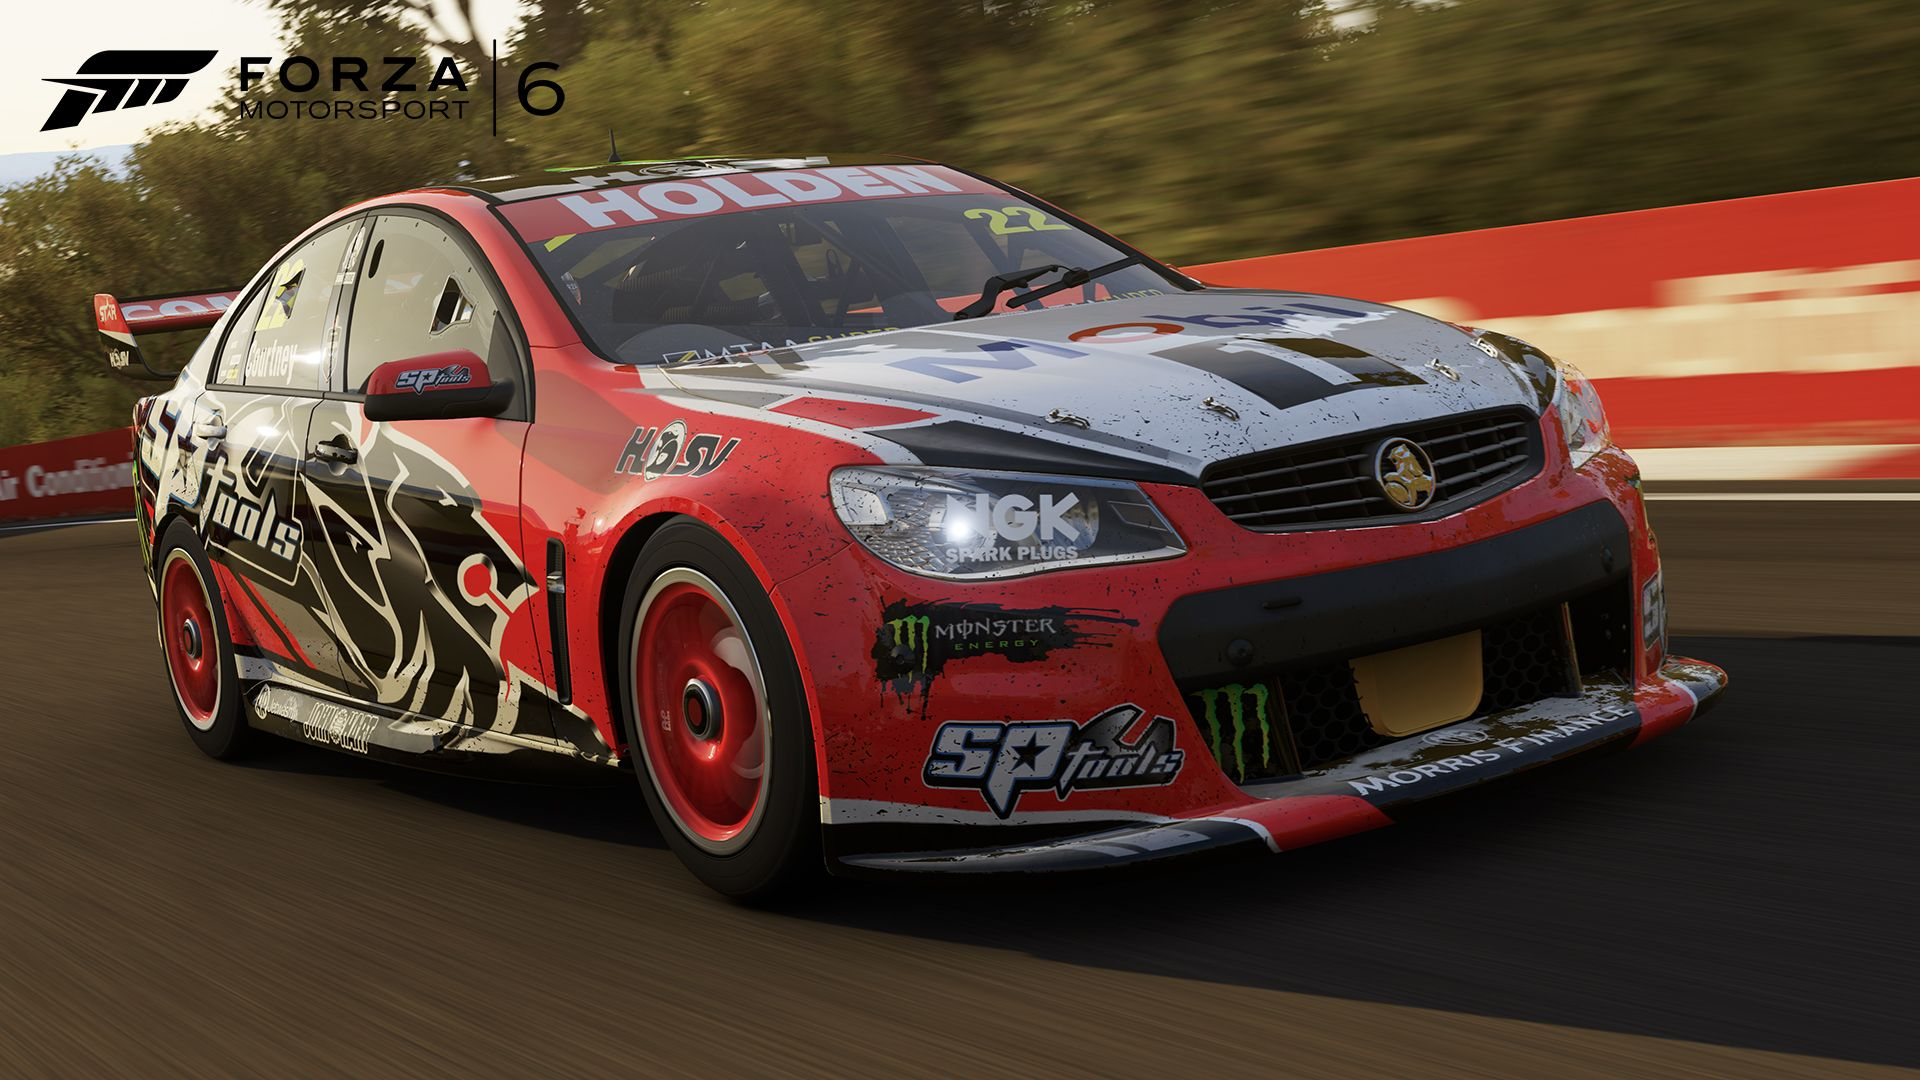 Xbox racing 2013 bathurst 1000 wildcard v8 supercars pinterest racing and xbox